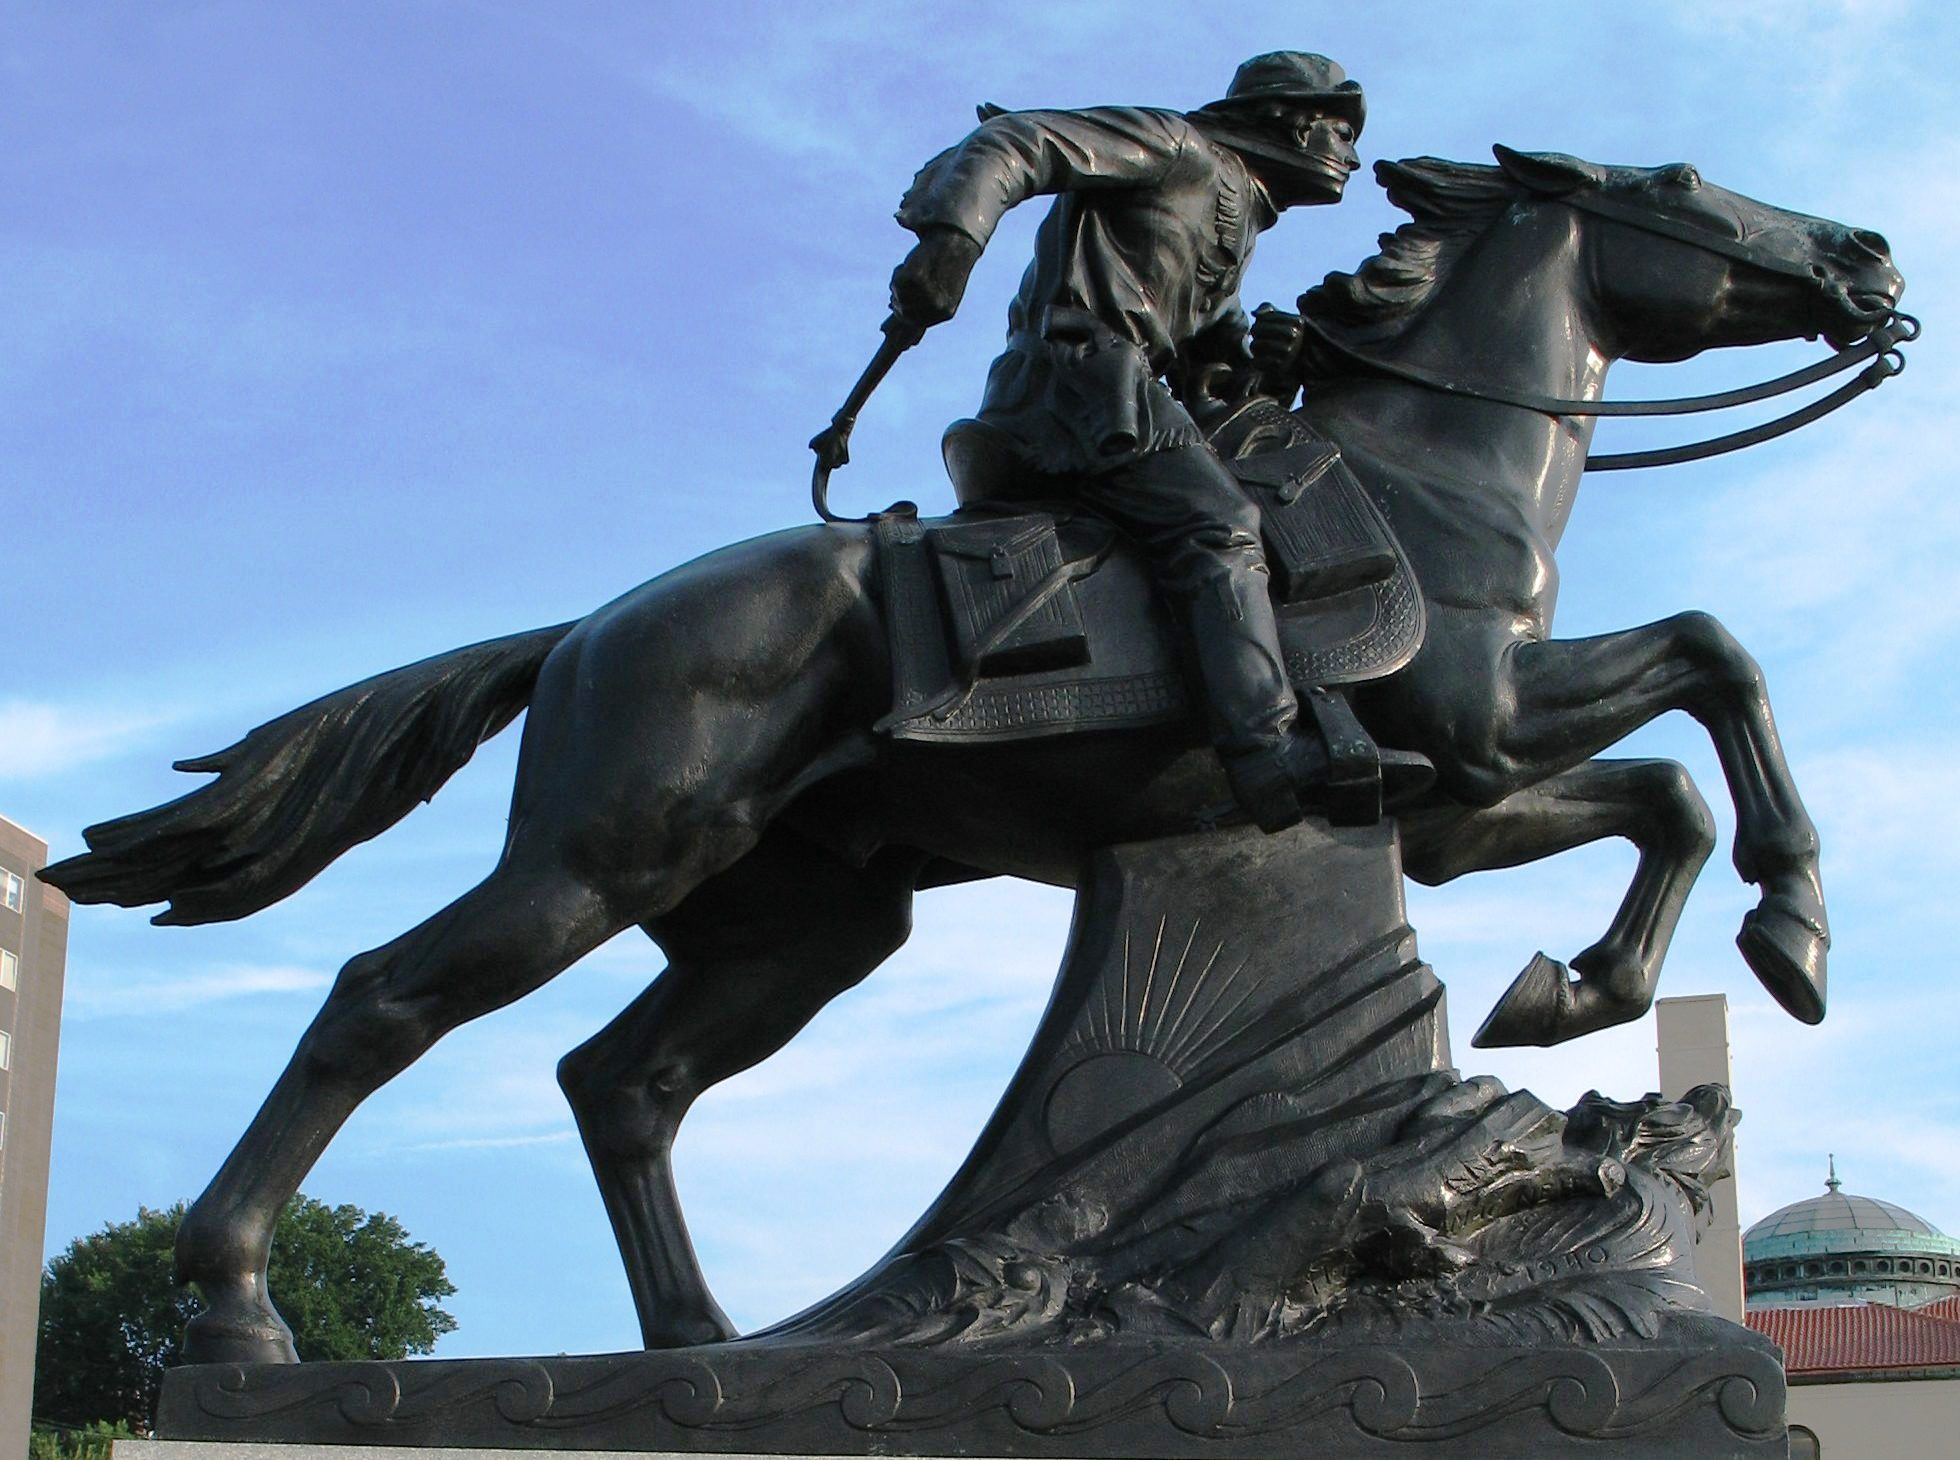 Pony Express statue in St. Joseph, Missouri. Photo taken on August 24, 2006.